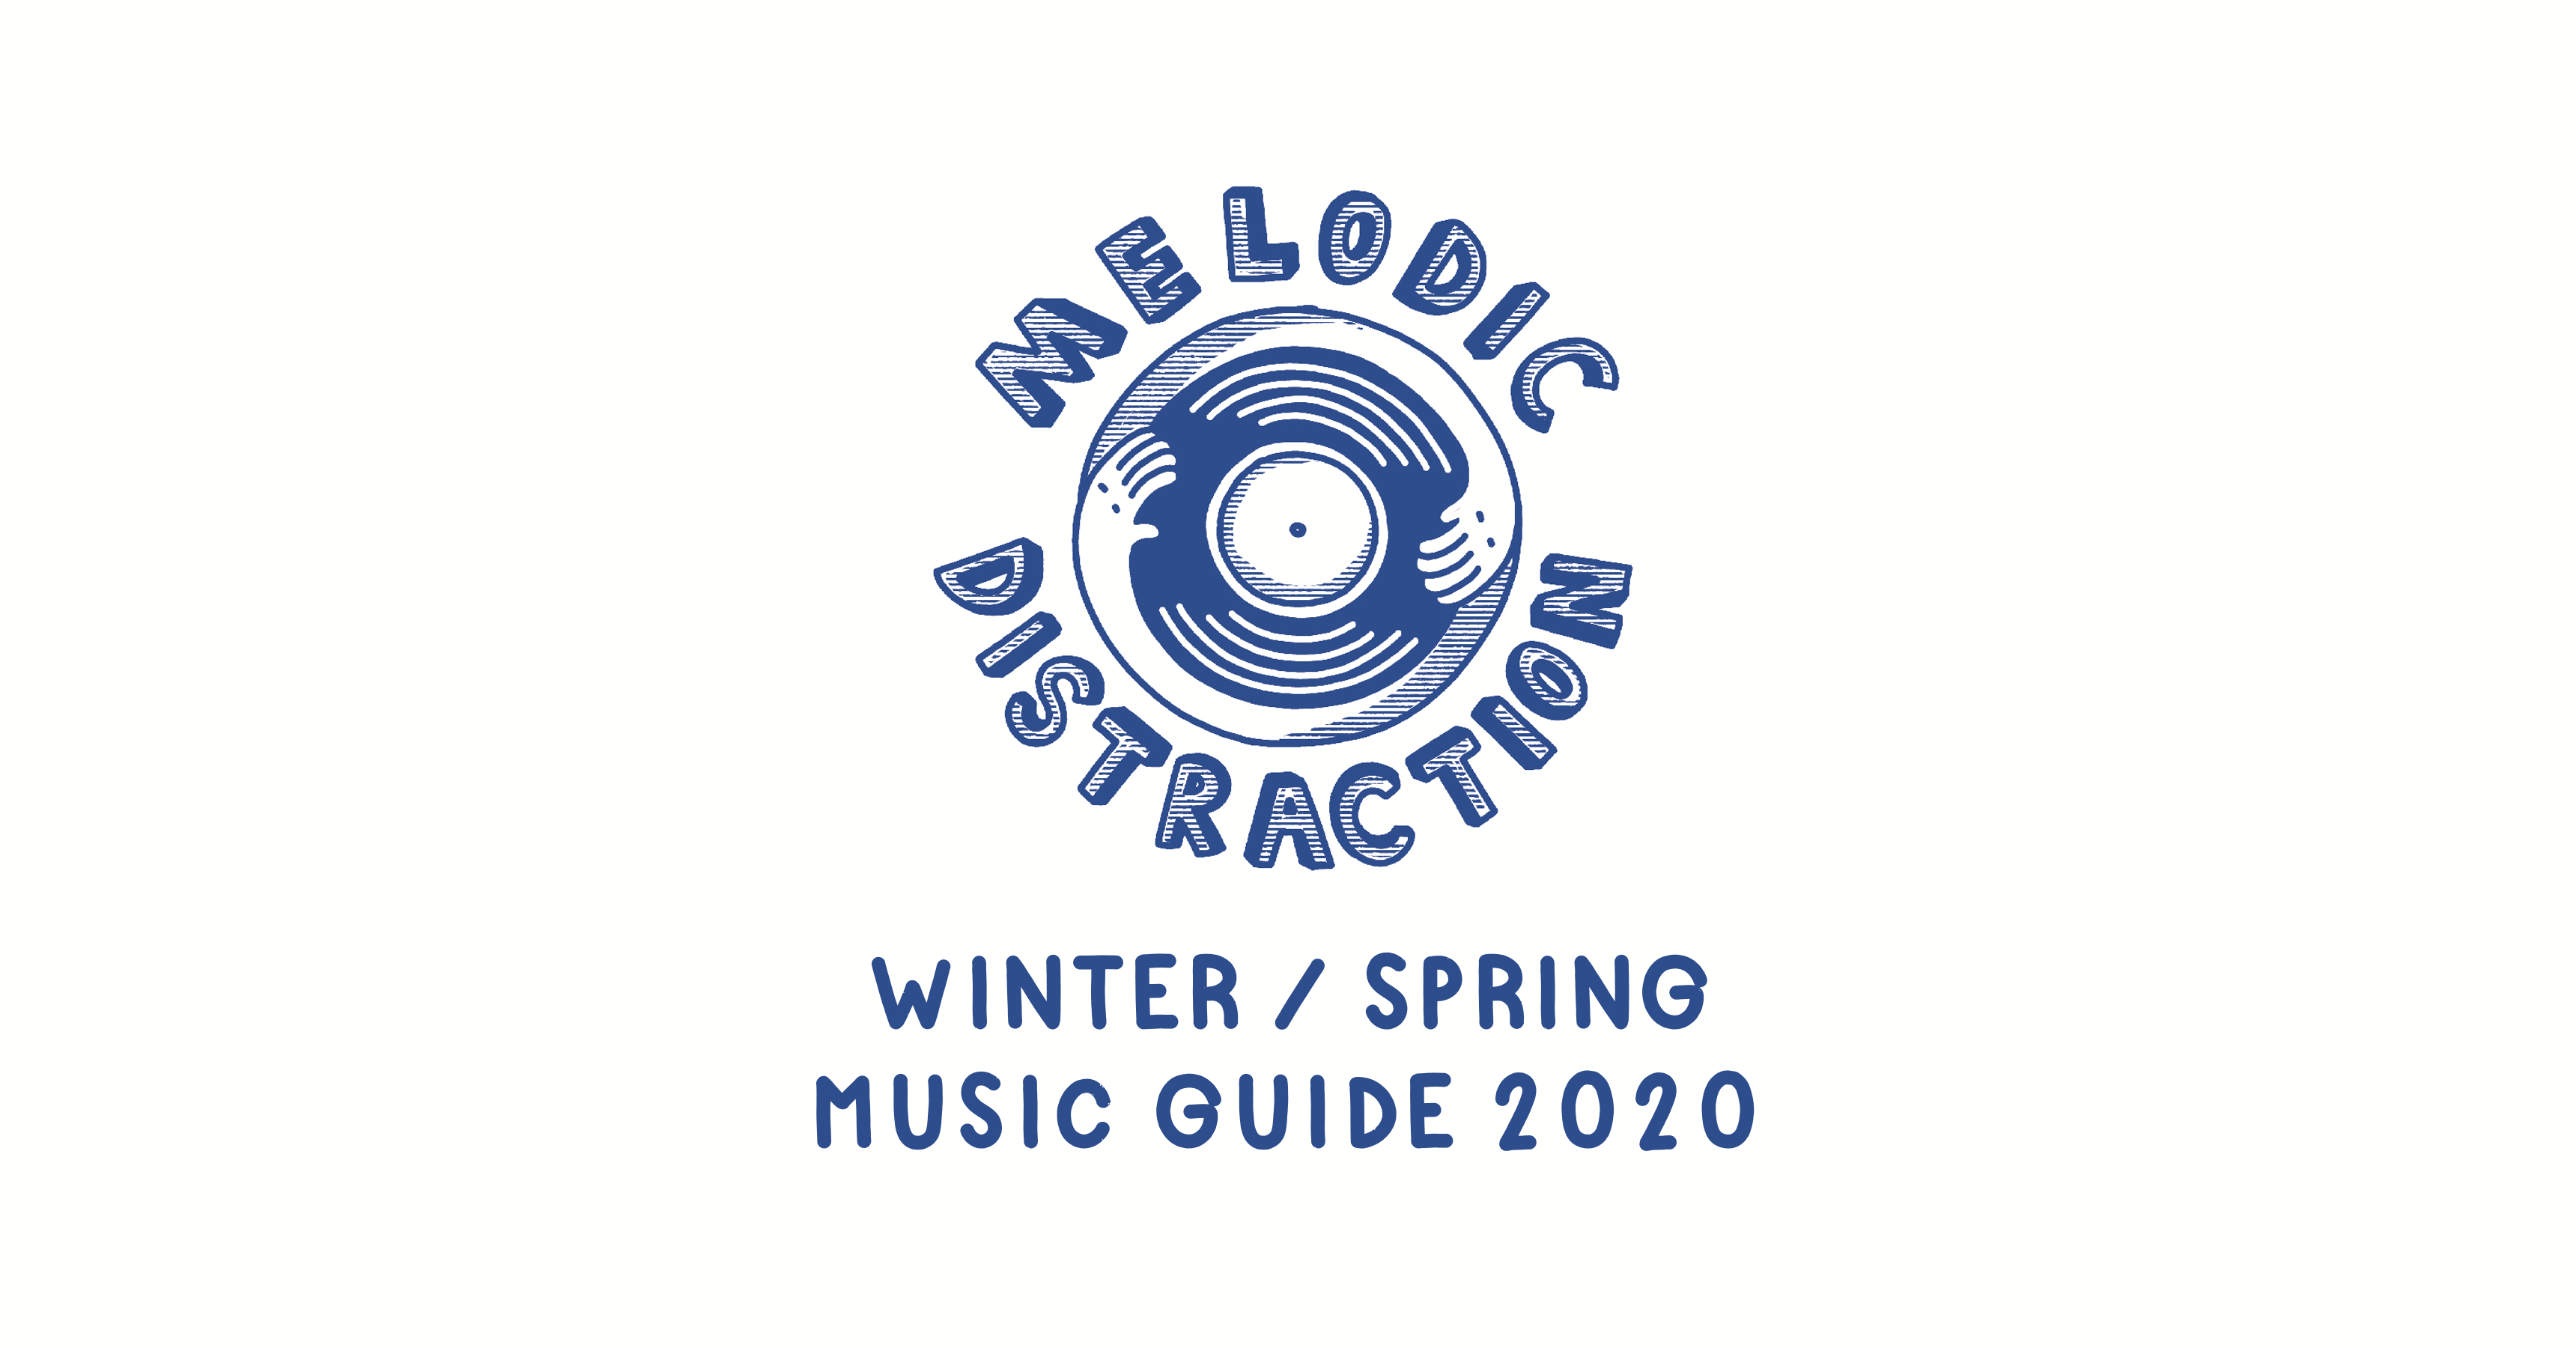 Melodic Distraction Radio Release Winter/Spring Music Guide 2020